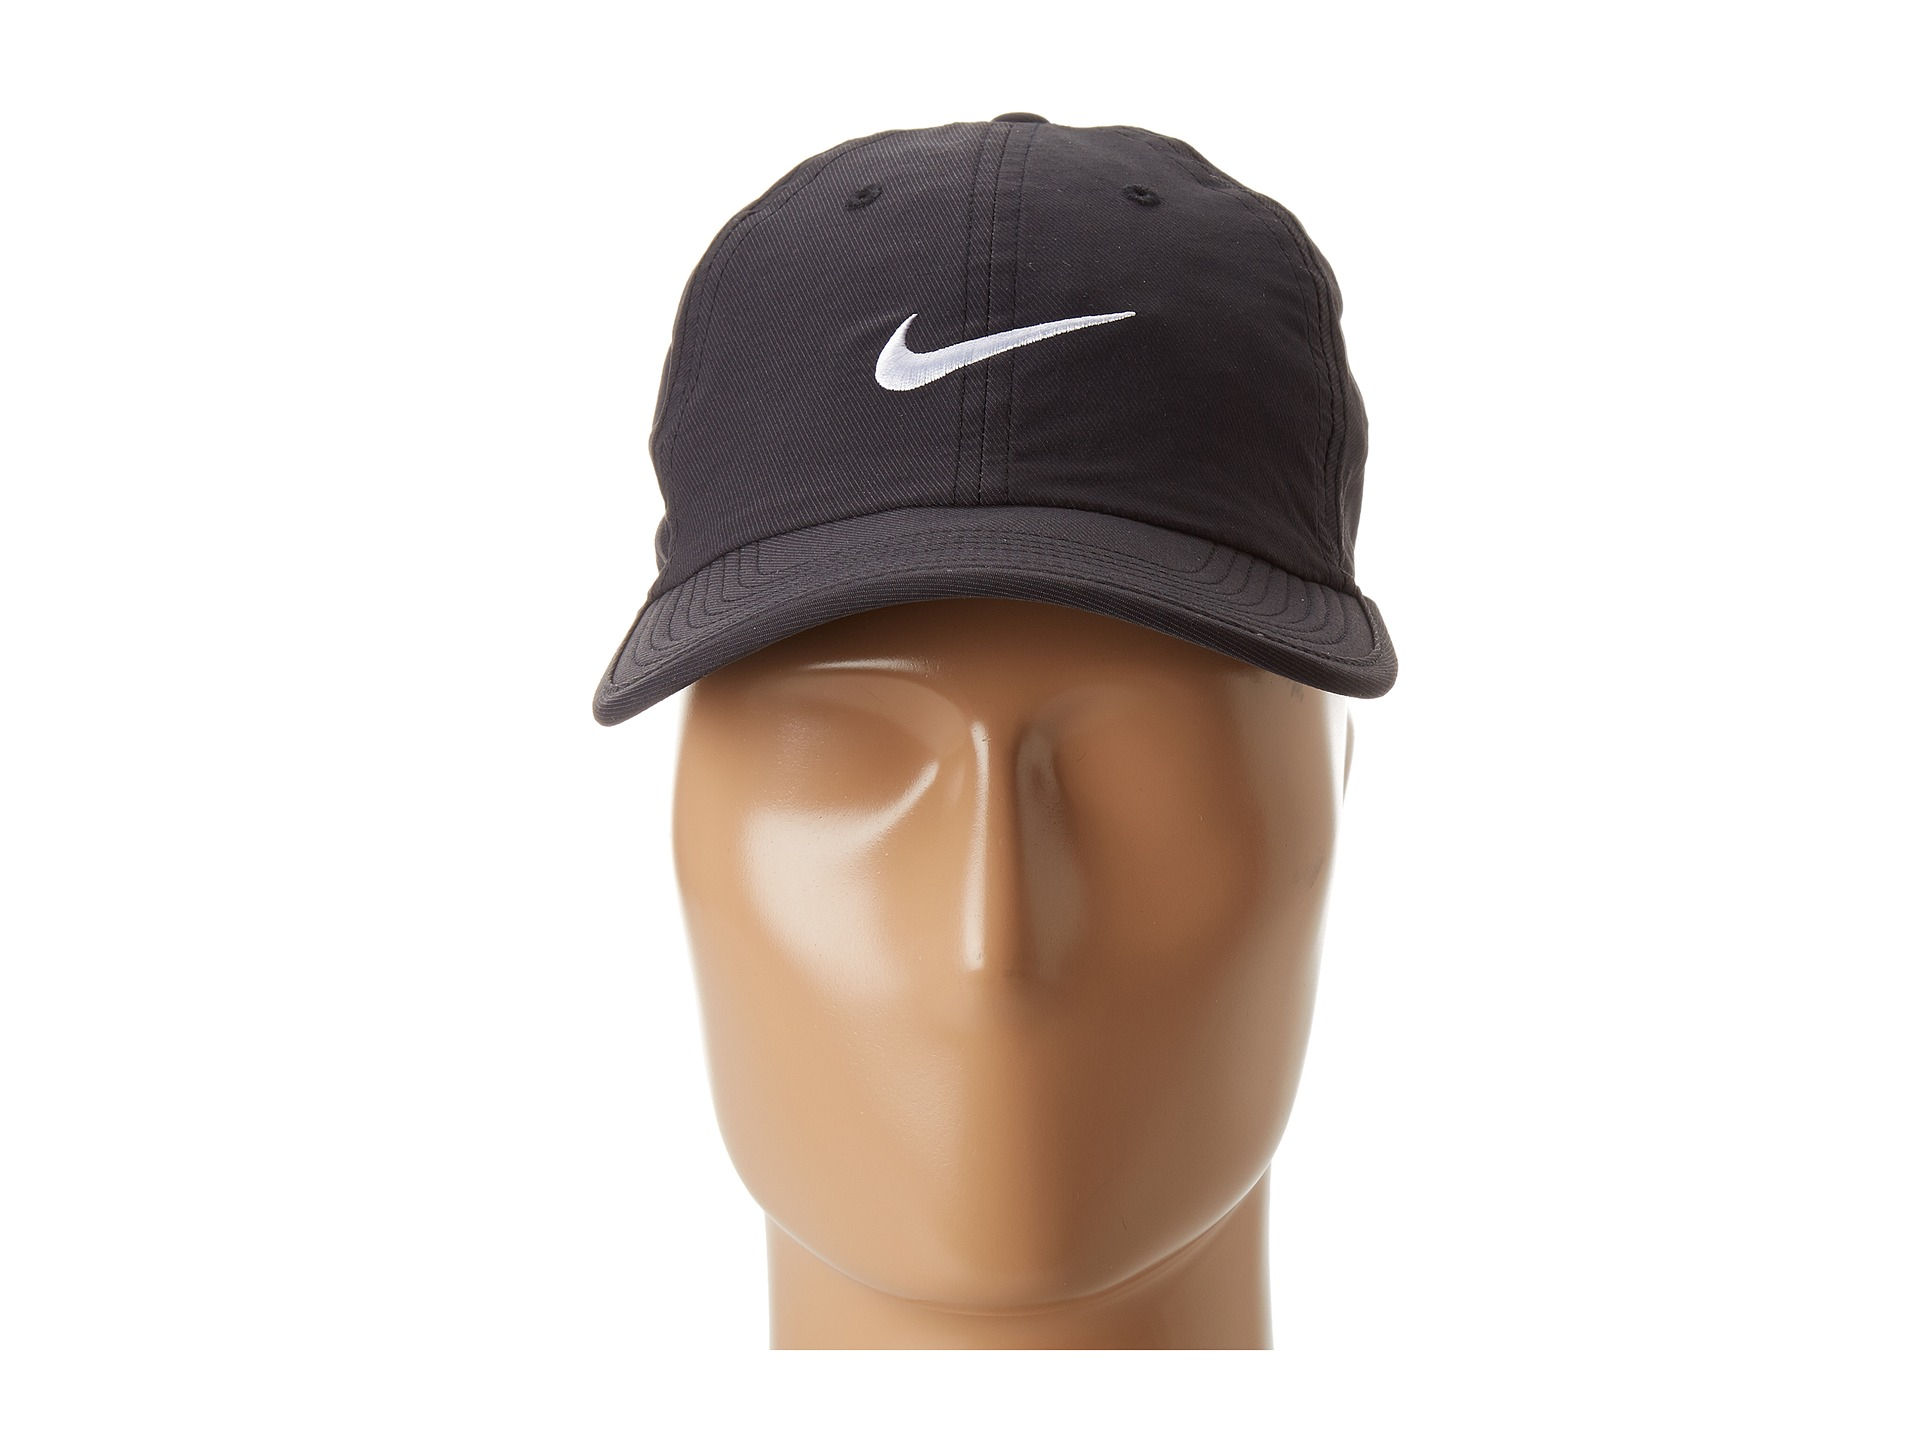 88724ec471c Lyst - Nike Heritage Df Twill Adjustable Cap in Black for Men